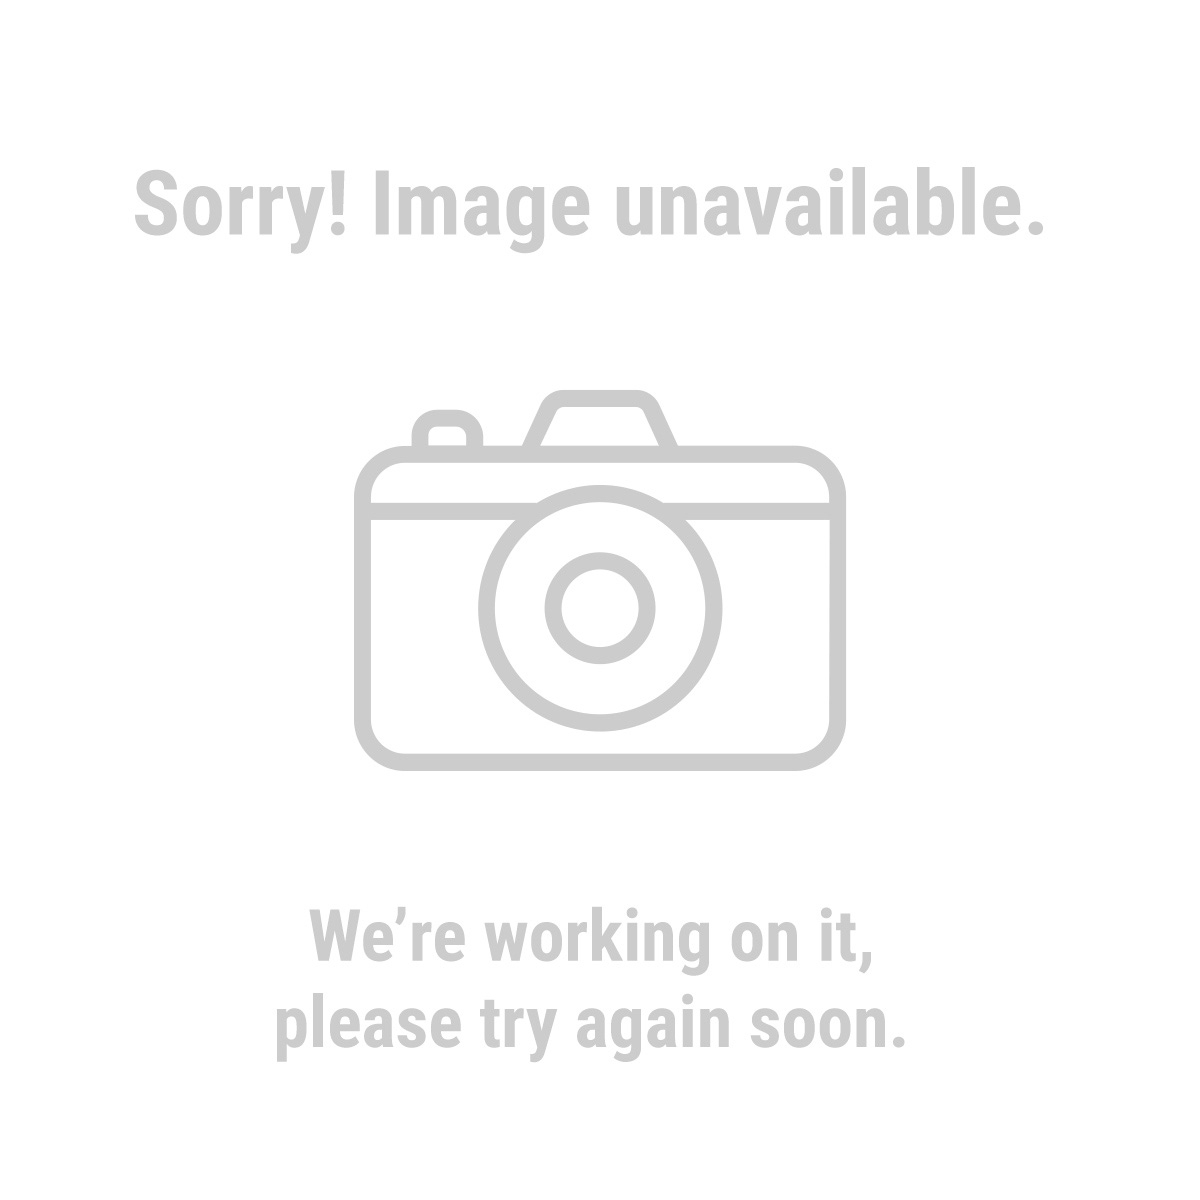 Haul-Master 63100 12 Volt Magnetic Towing Light Kit